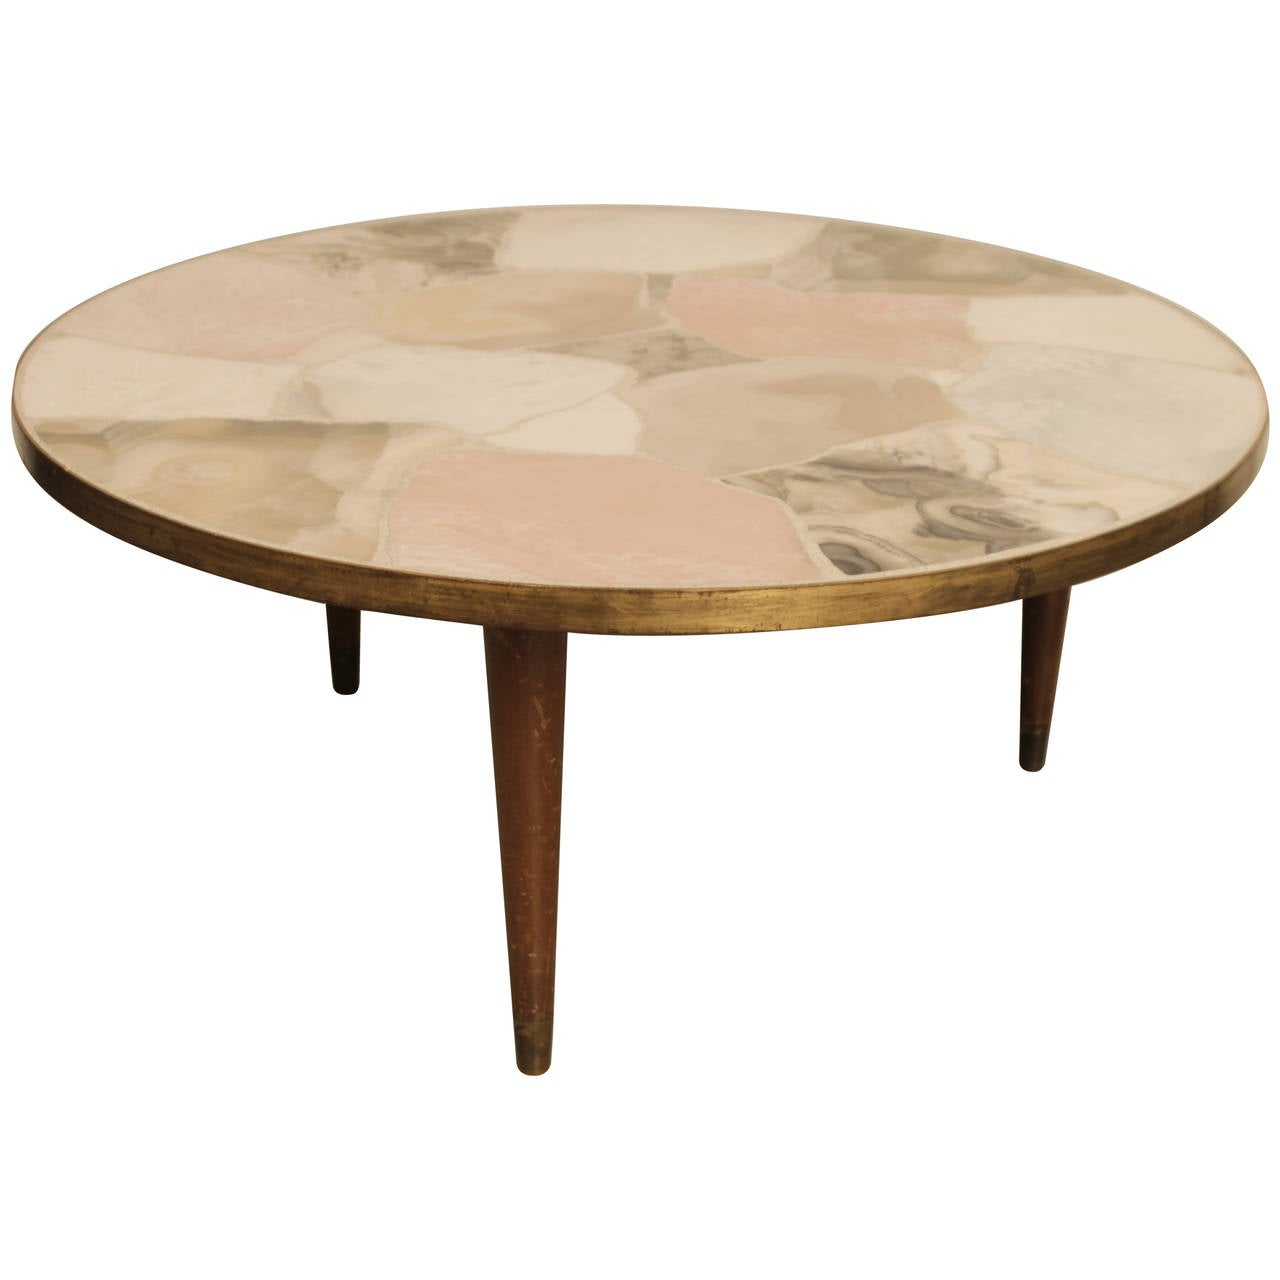 Vintage Italian Circular Brass And Marble Coffee Table At 1stdibs